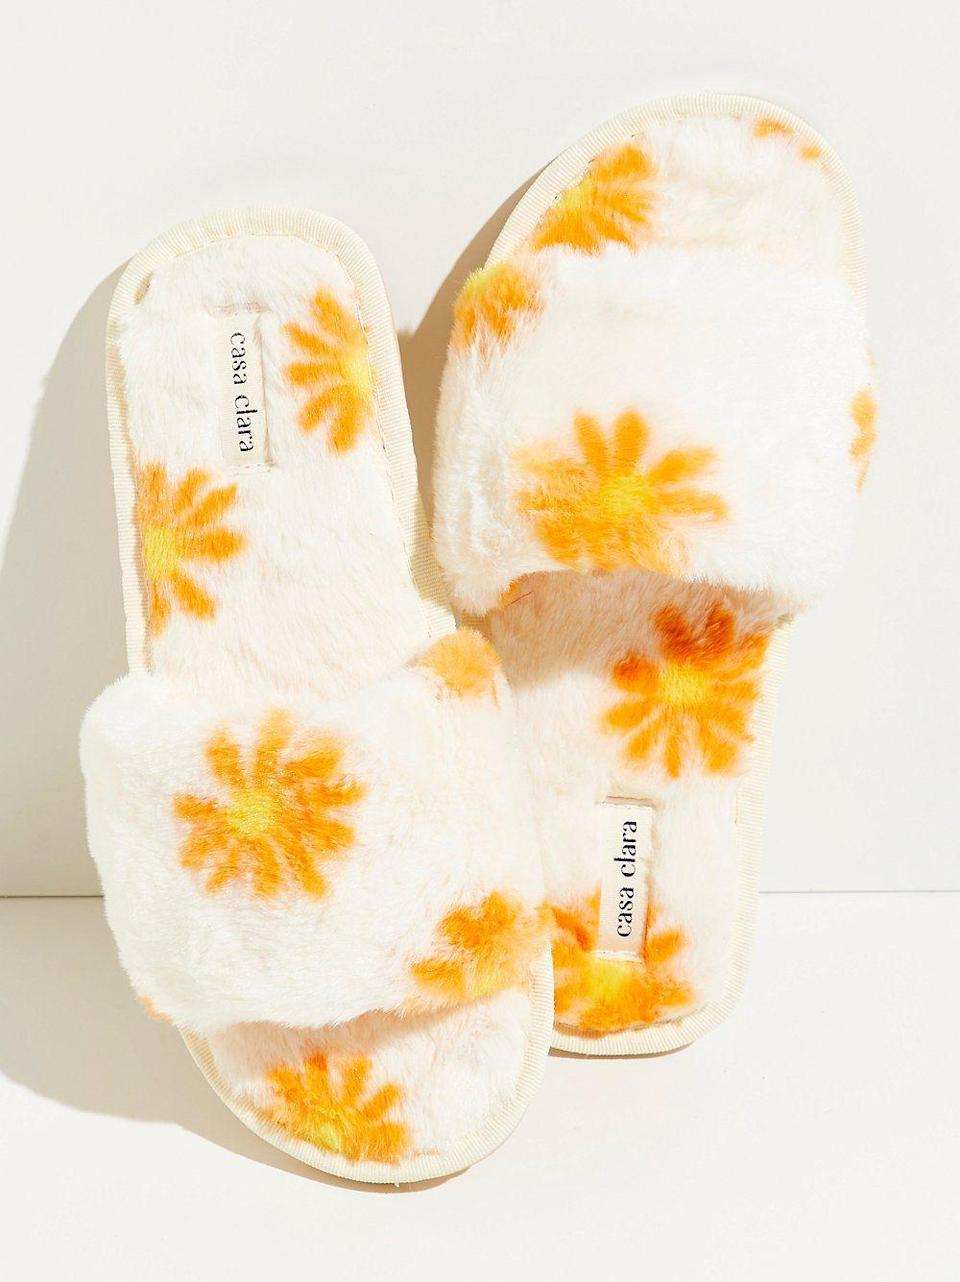 """<p><strong>Casa Clara</strong></p><p>freepeople.com</p><p><strong>$48.00</strong></p><p><a href=""""https://go.redirectingat.com?id=74968X1596630&url=https%3A%2F%2Fwww.freepeople.com%2Fshop%2Foopsy-daisy-faux-fur-slippers%2F&sref=https%3A%2F%2Fwww.seventeen.com%2Flife%2Ffriends-family%2Fg29844066%2Fbest-gifts-for-sister%2F"""" rel=""""nofollow noopener"""" target=""""_blank"""" data-ylk=""""slk:Shop Now"""" class=""""link rapid-noclick-resp"""">Shop Now</a></p><p>Every sister, mom, cousin – basically, anyone you're shopping for would appreciate a fluffed-out pair of slips.</p>"""